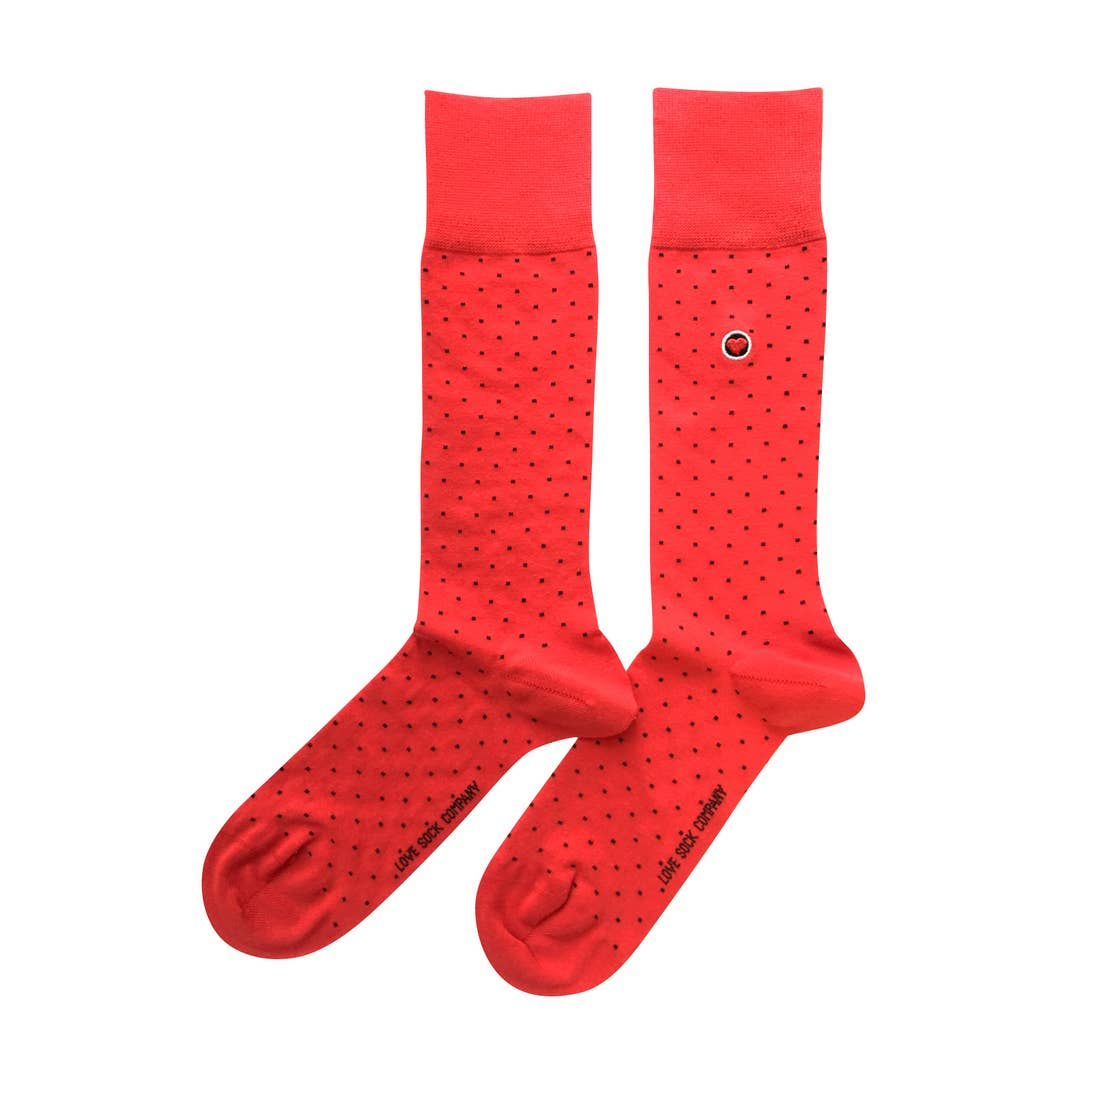 Business Class Gift Box Socks | Love Sock Company